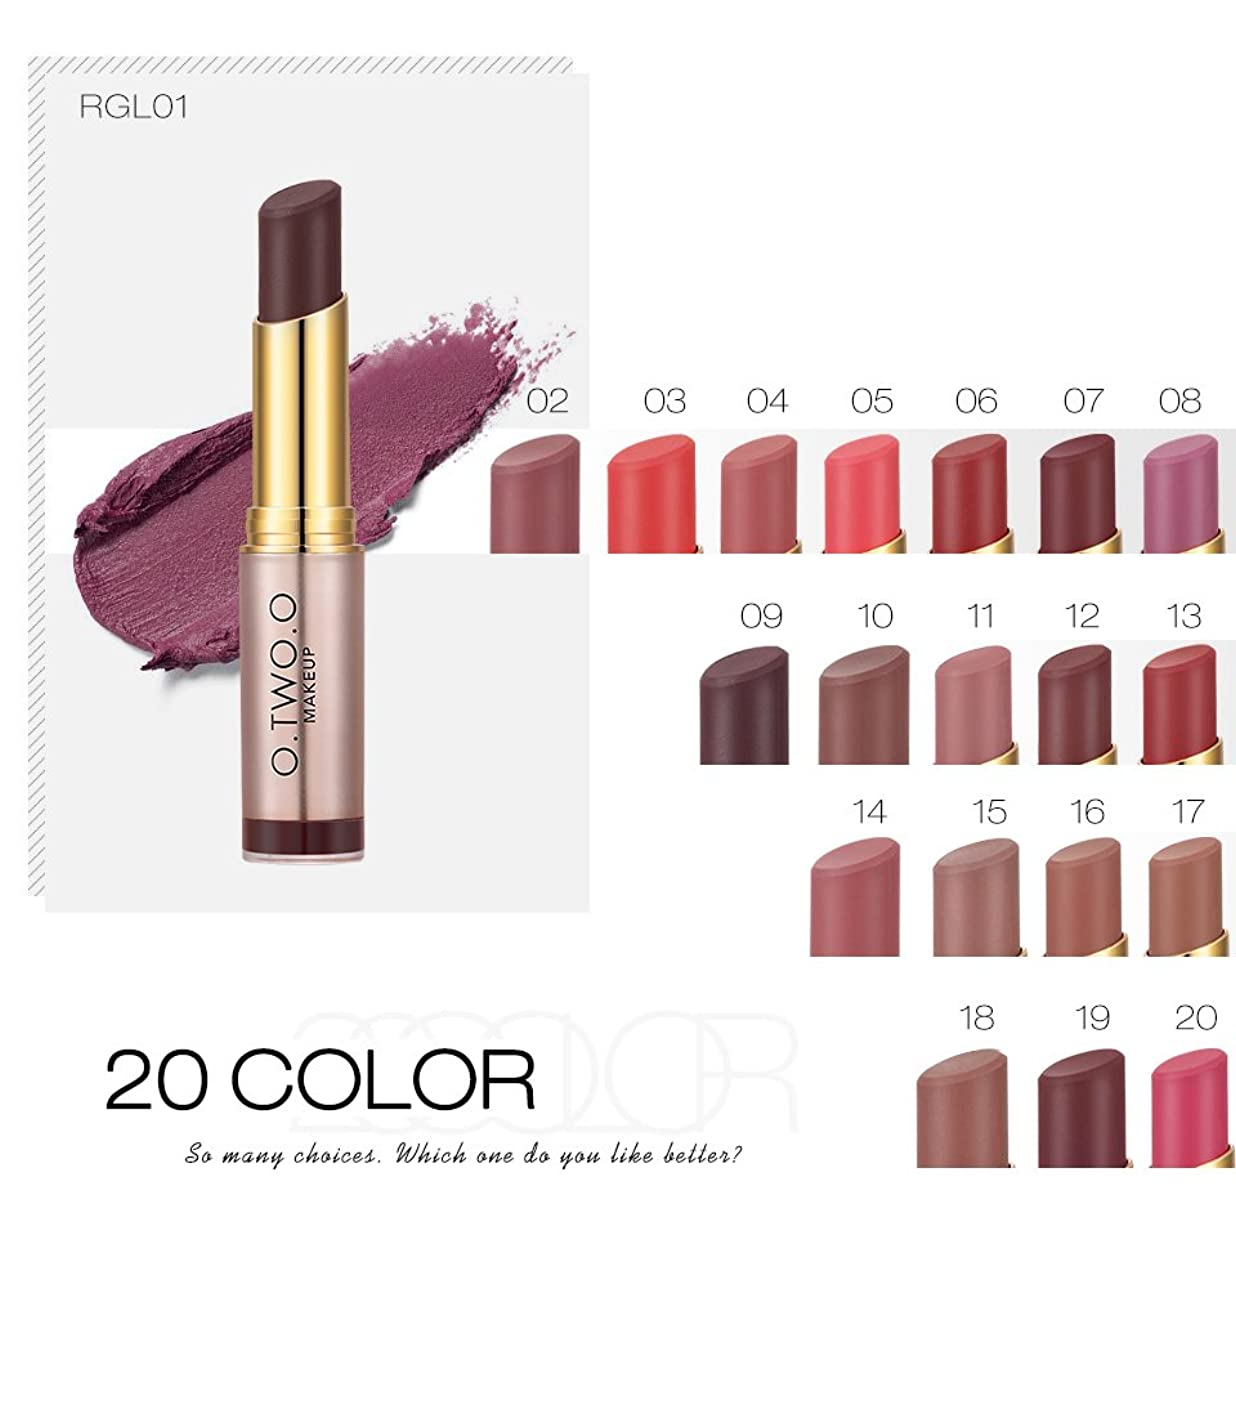 危険にさらされているパン腸(RGL07) Brand Wholesale Beauty Makeup Lipstick Popular Colors Best Seller Long Lasting Lip Kit Matte Lip Cosmetics